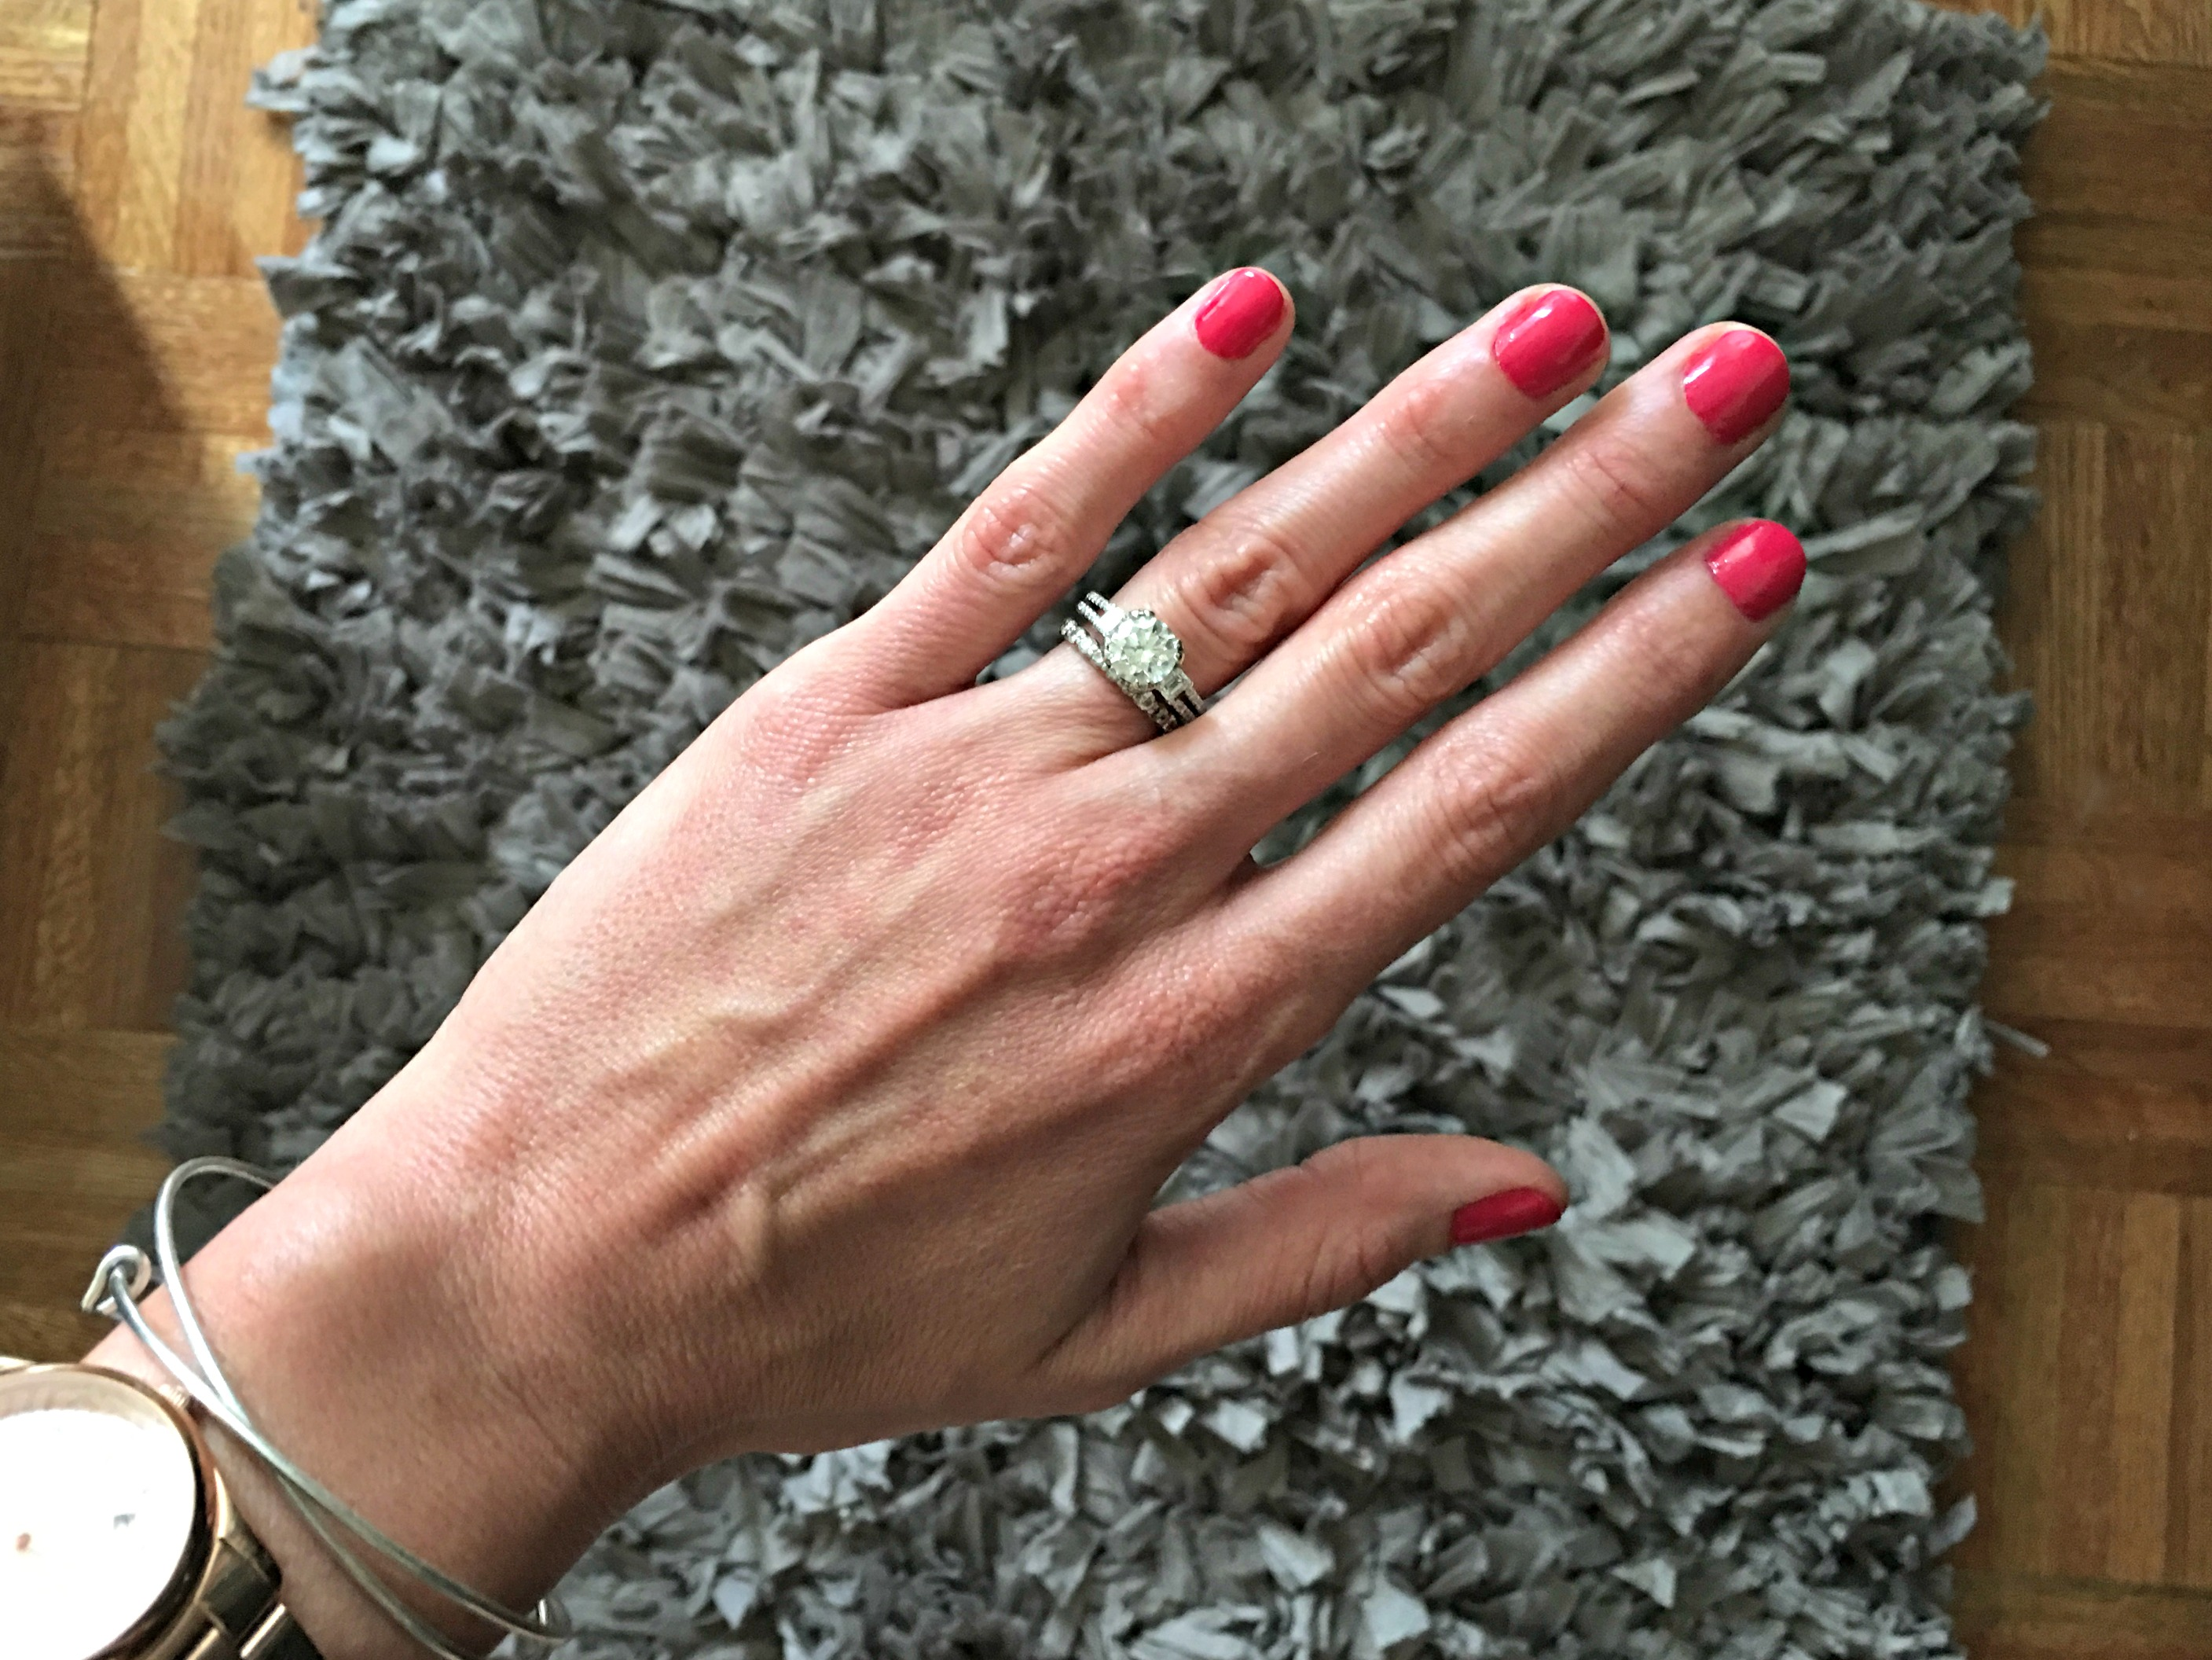 summer manicure - Essie nail polish - Watermelon